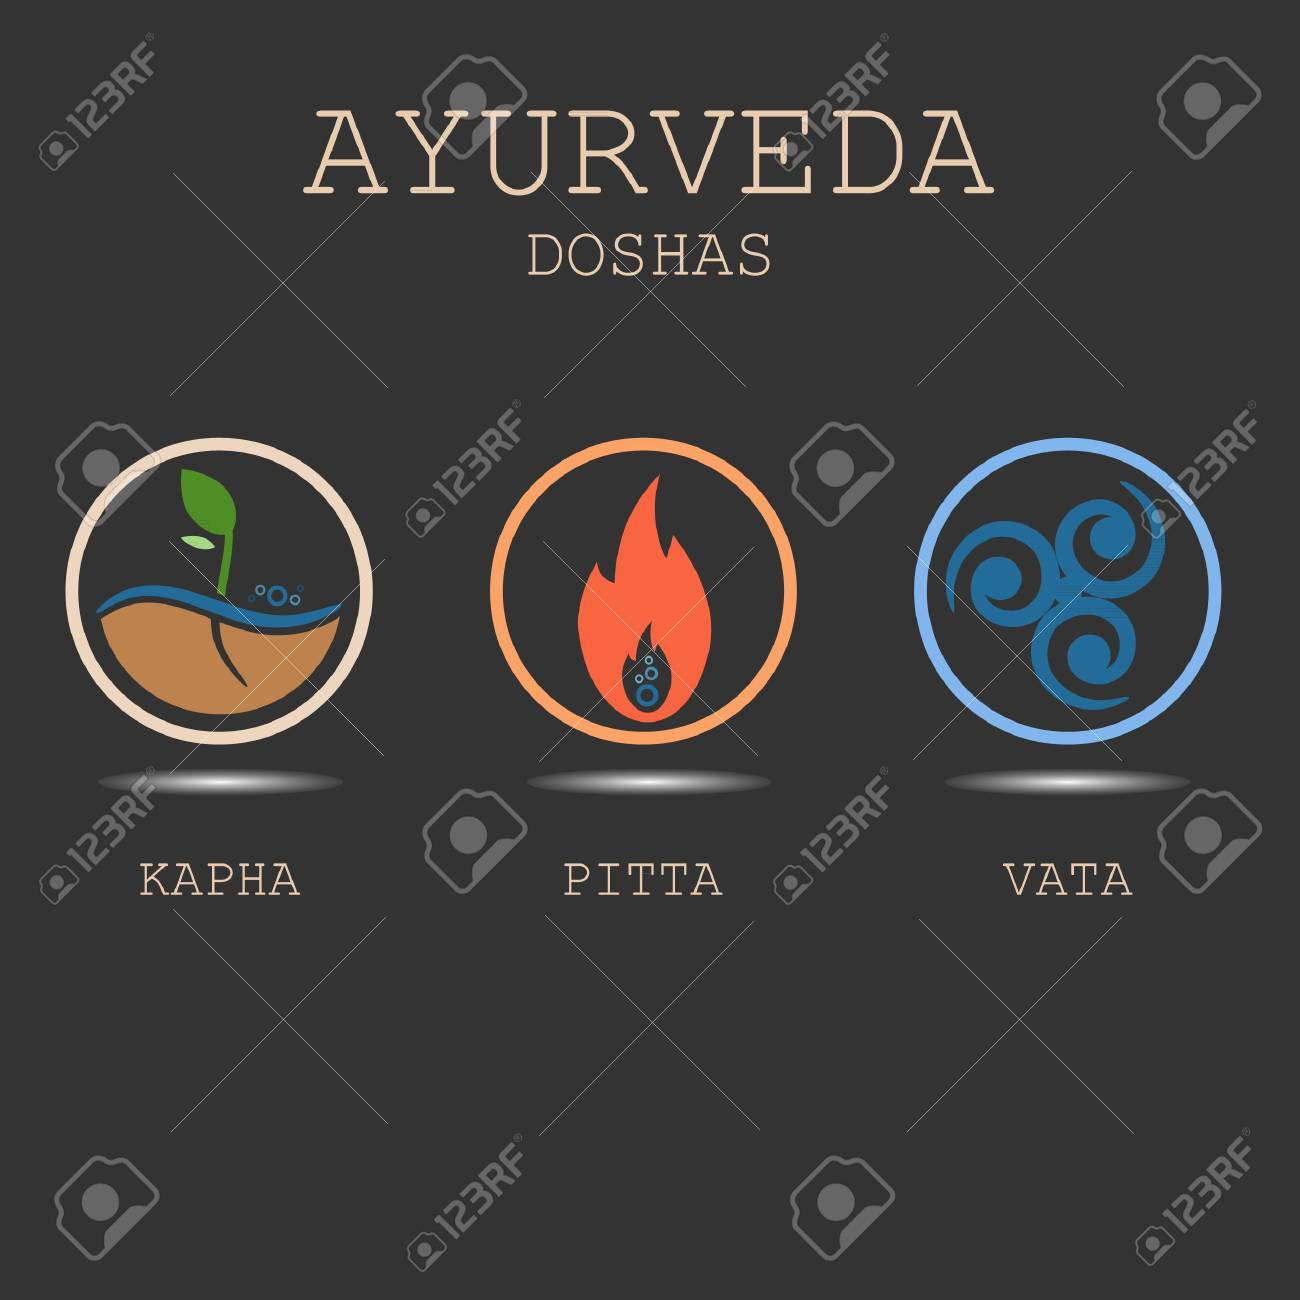 Ayurveda Doshas Vector Illustration On Black Background Ayurvedic 1300x1300